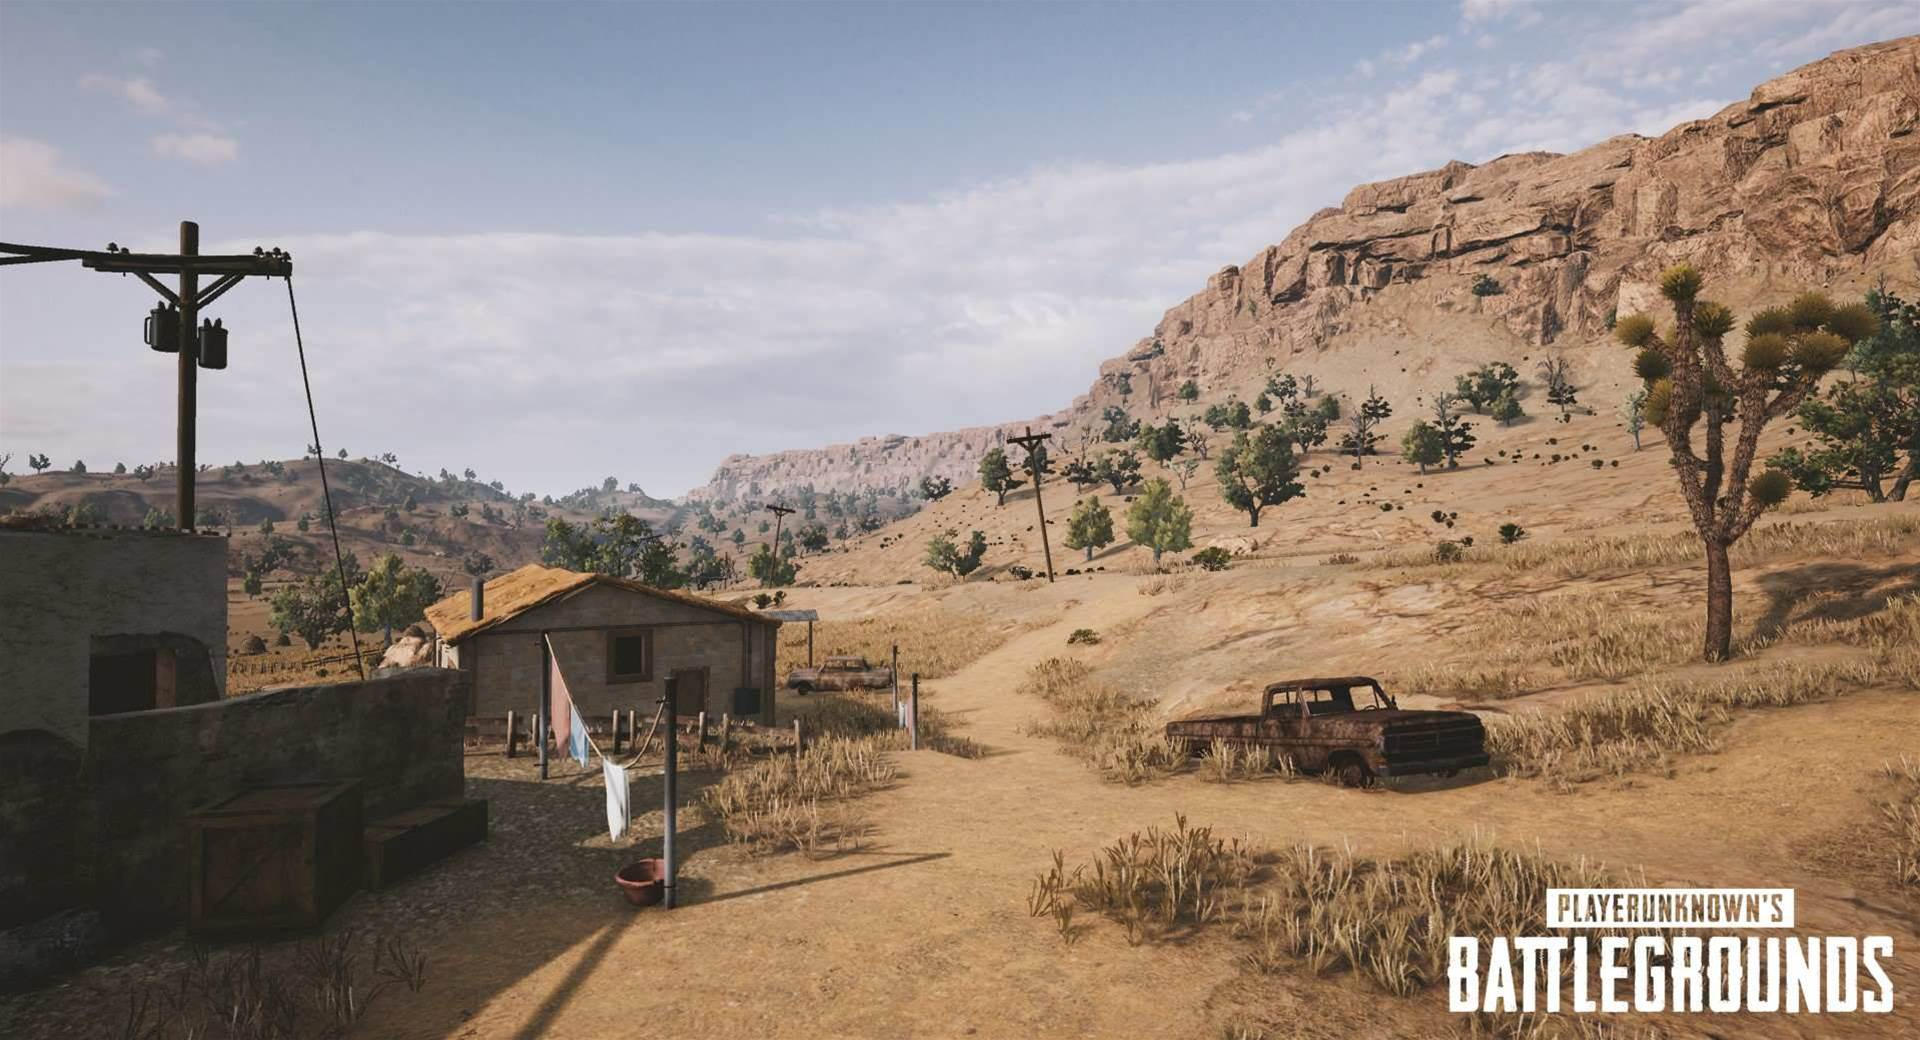 More new screens of the PUBG desert map